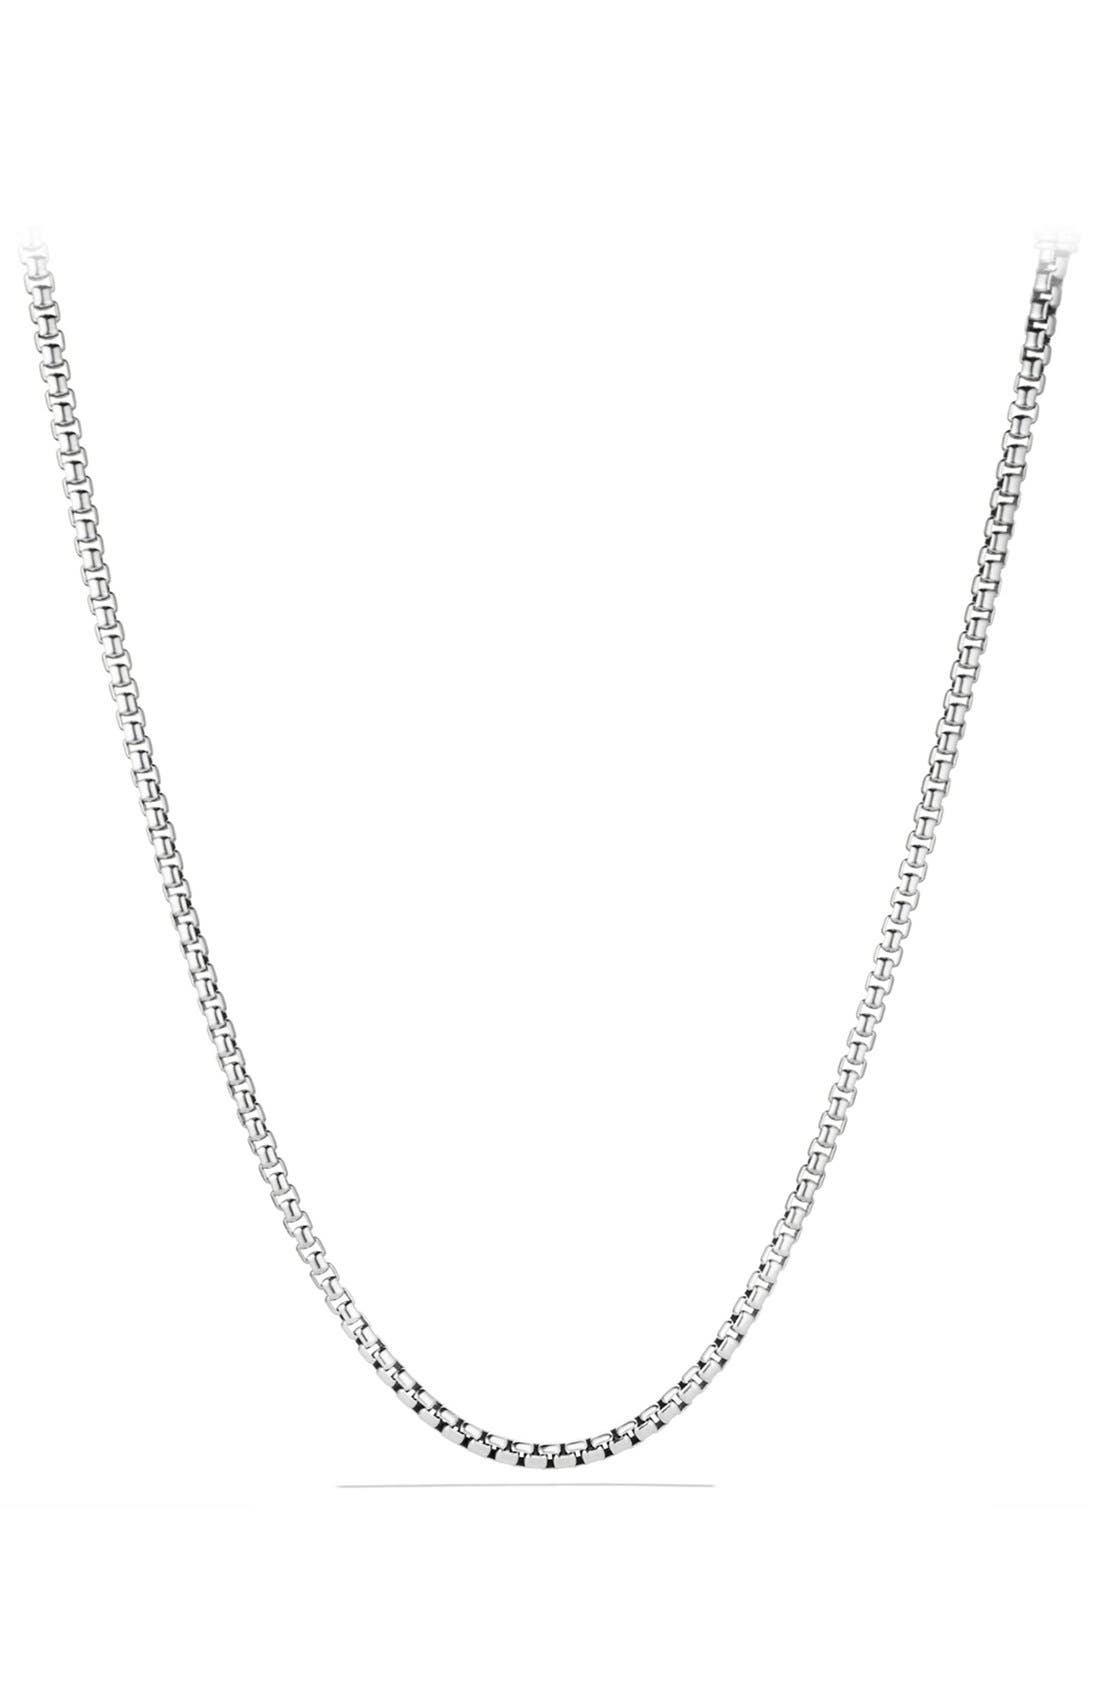 David Yurman 'Chain' Large Box Chain Necklace